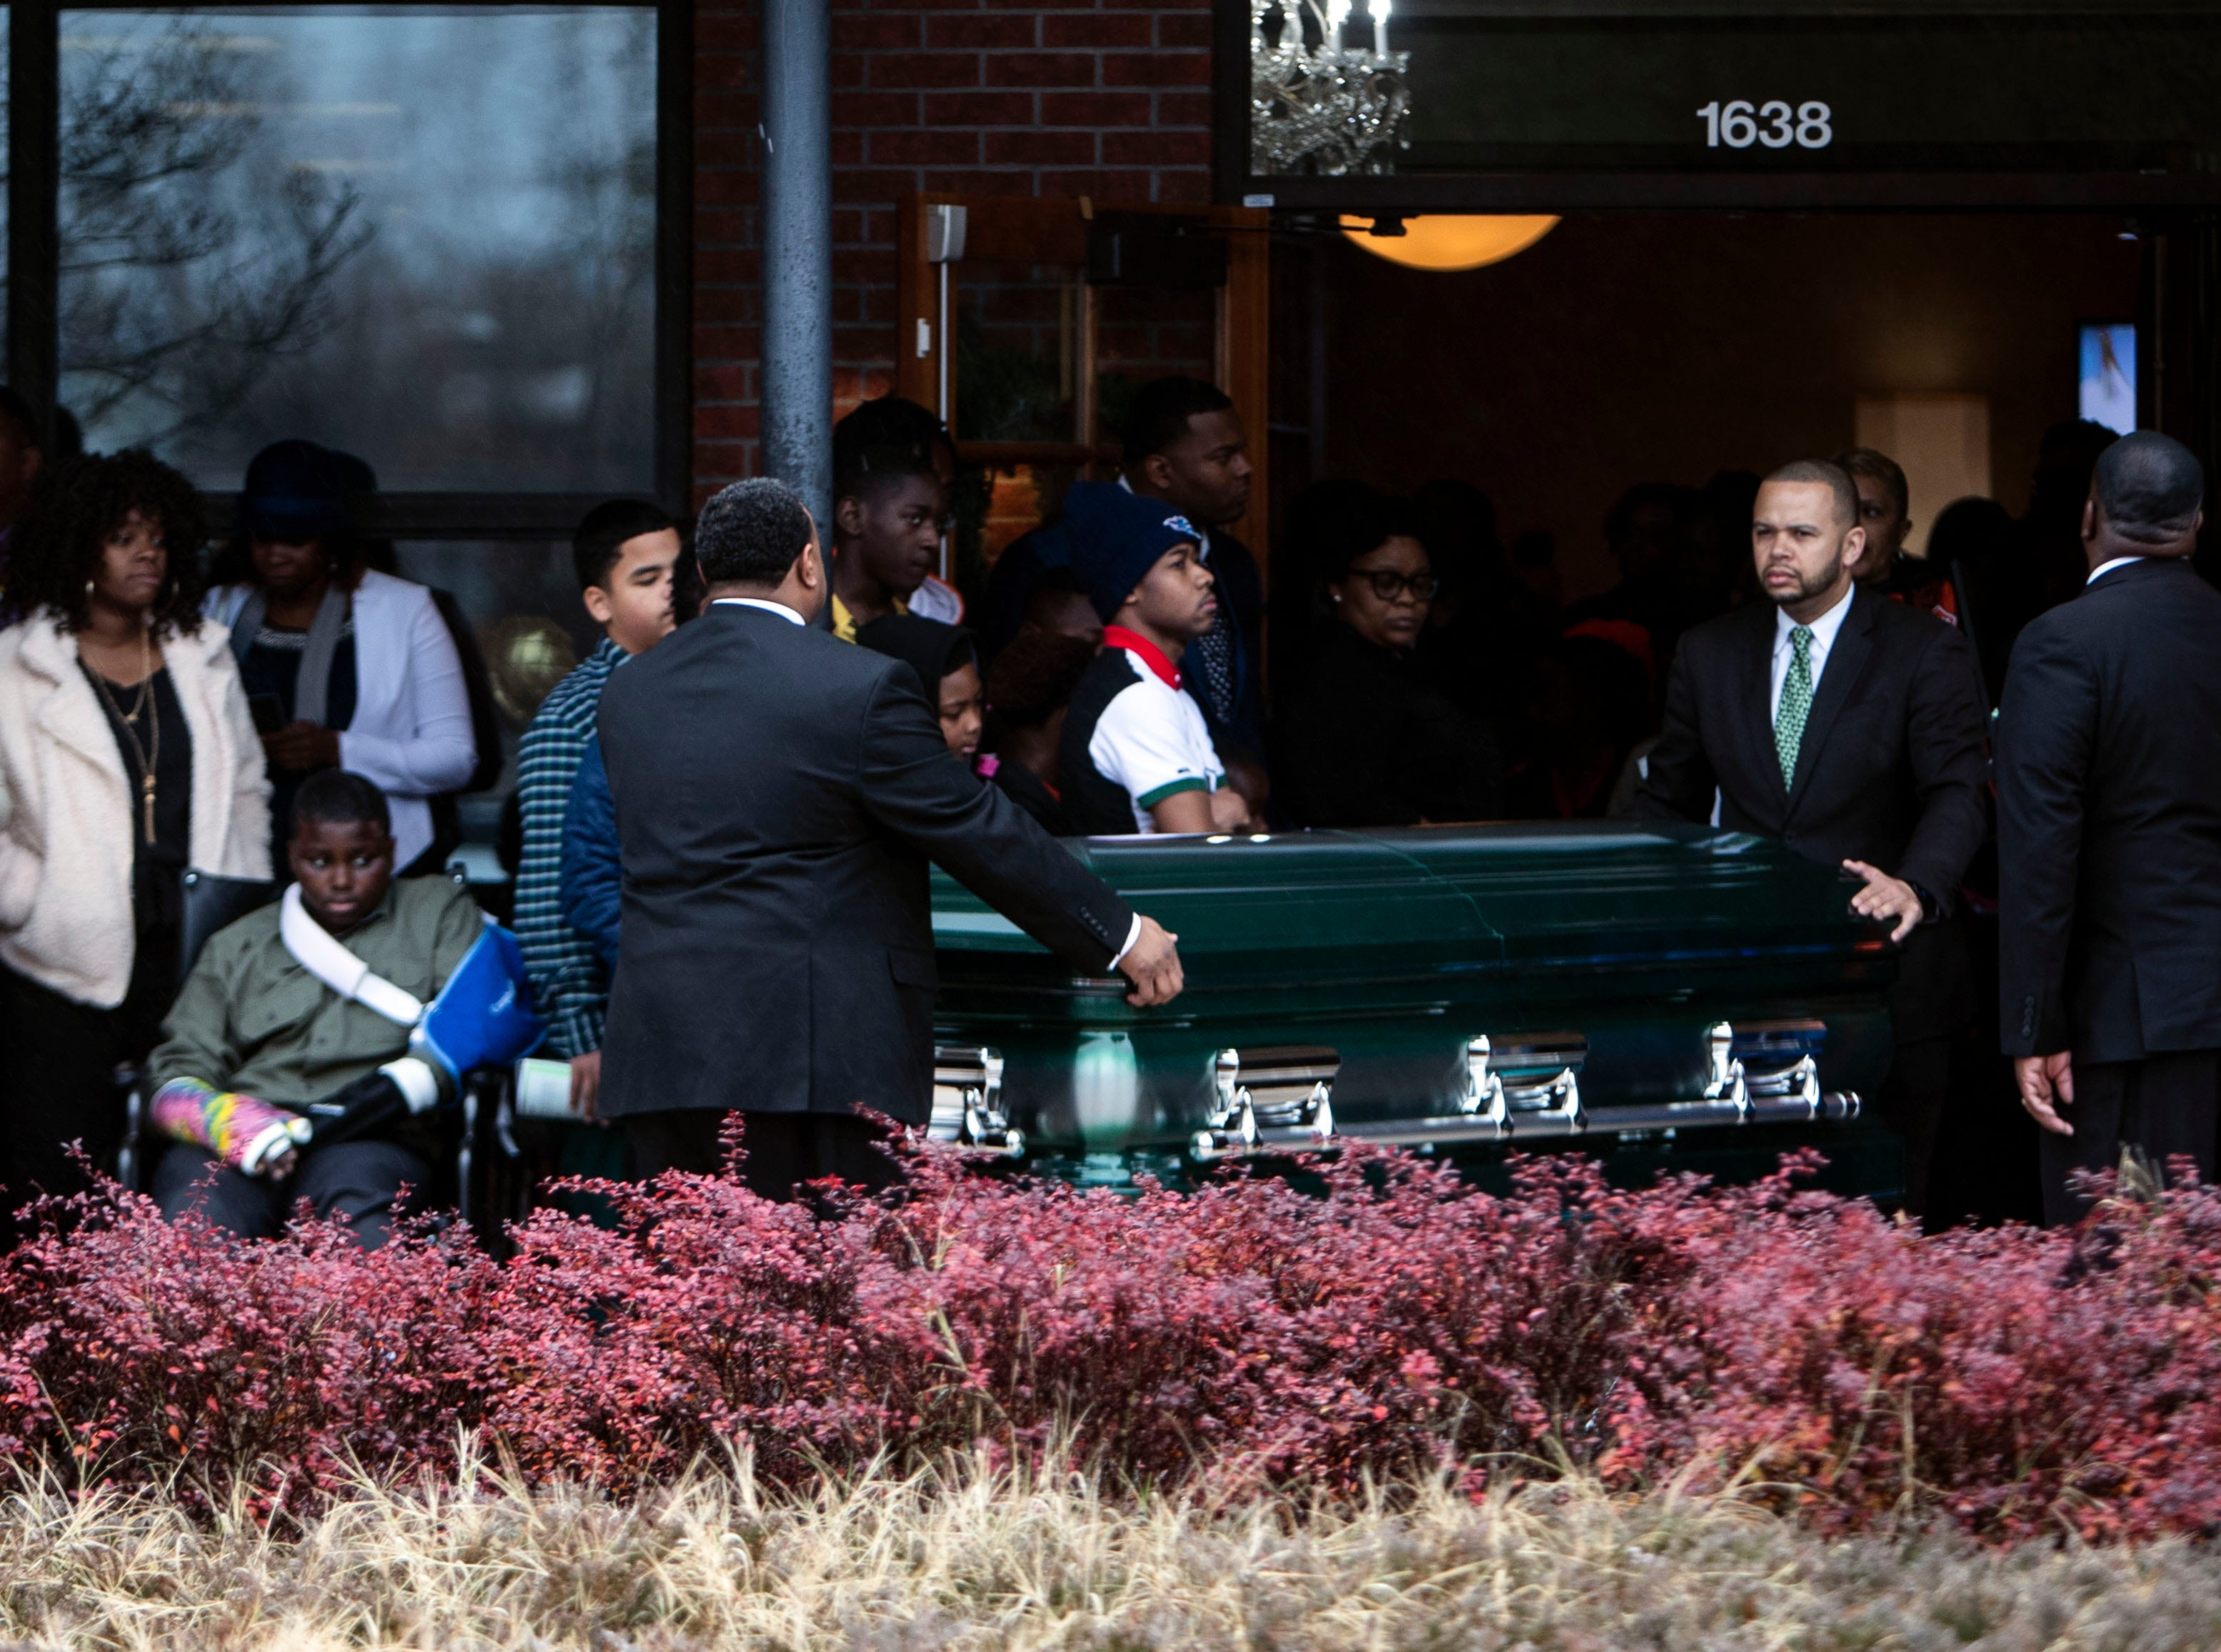 Kameren Johnson's casket is carried out of the Serenity Funeral Home's, Saturday, Dec. 15, 2018.